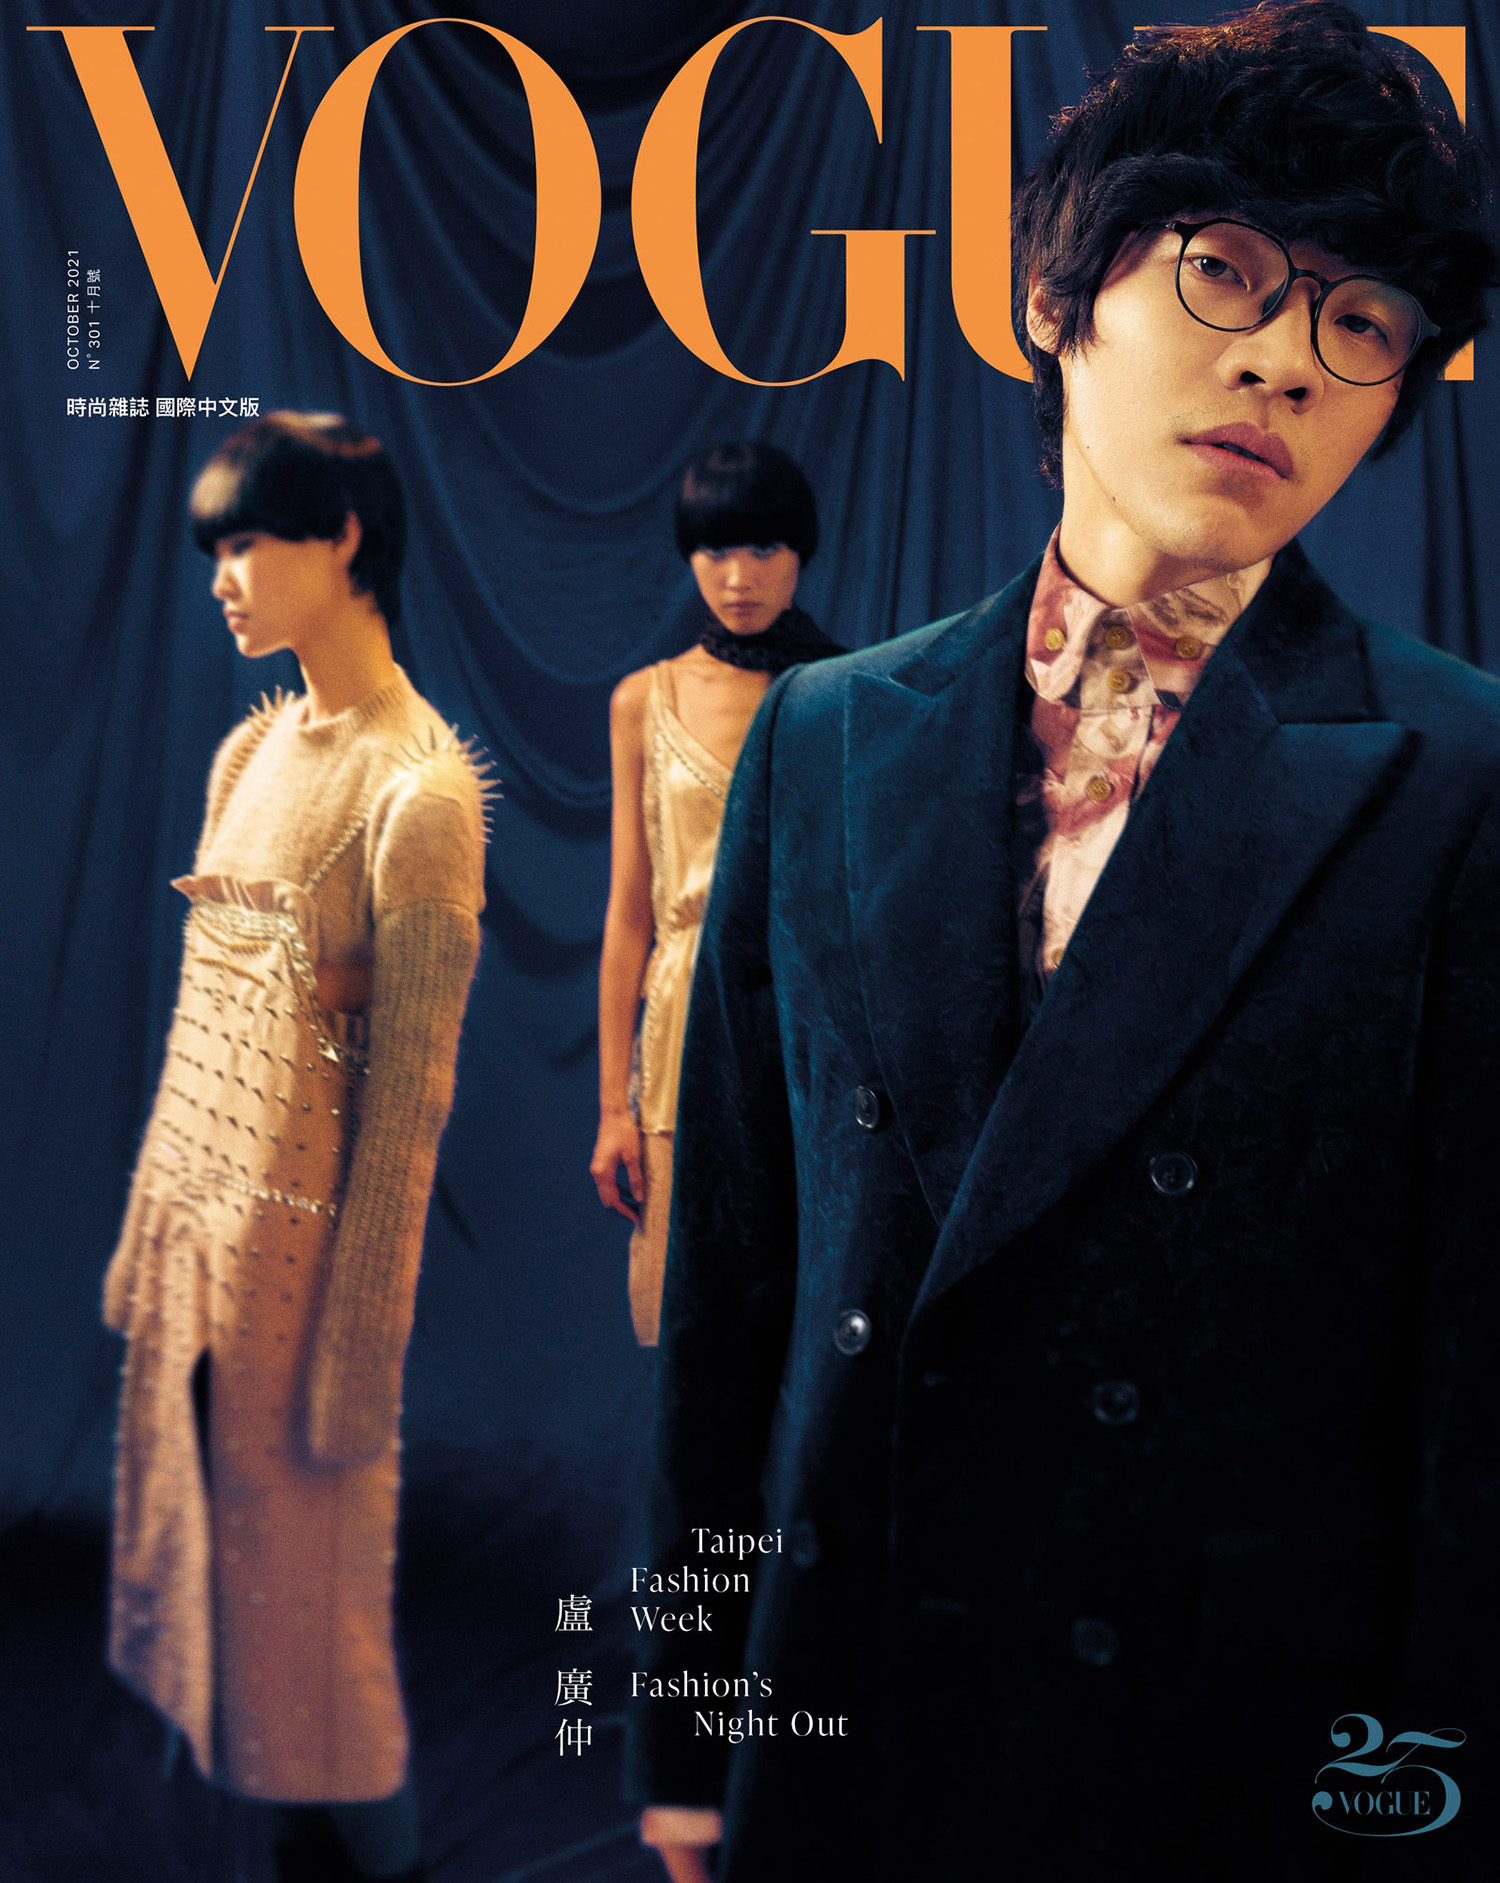 Crowd Lu covers Vogue Taiwan October 2021 by Cheng Po Ou Yang